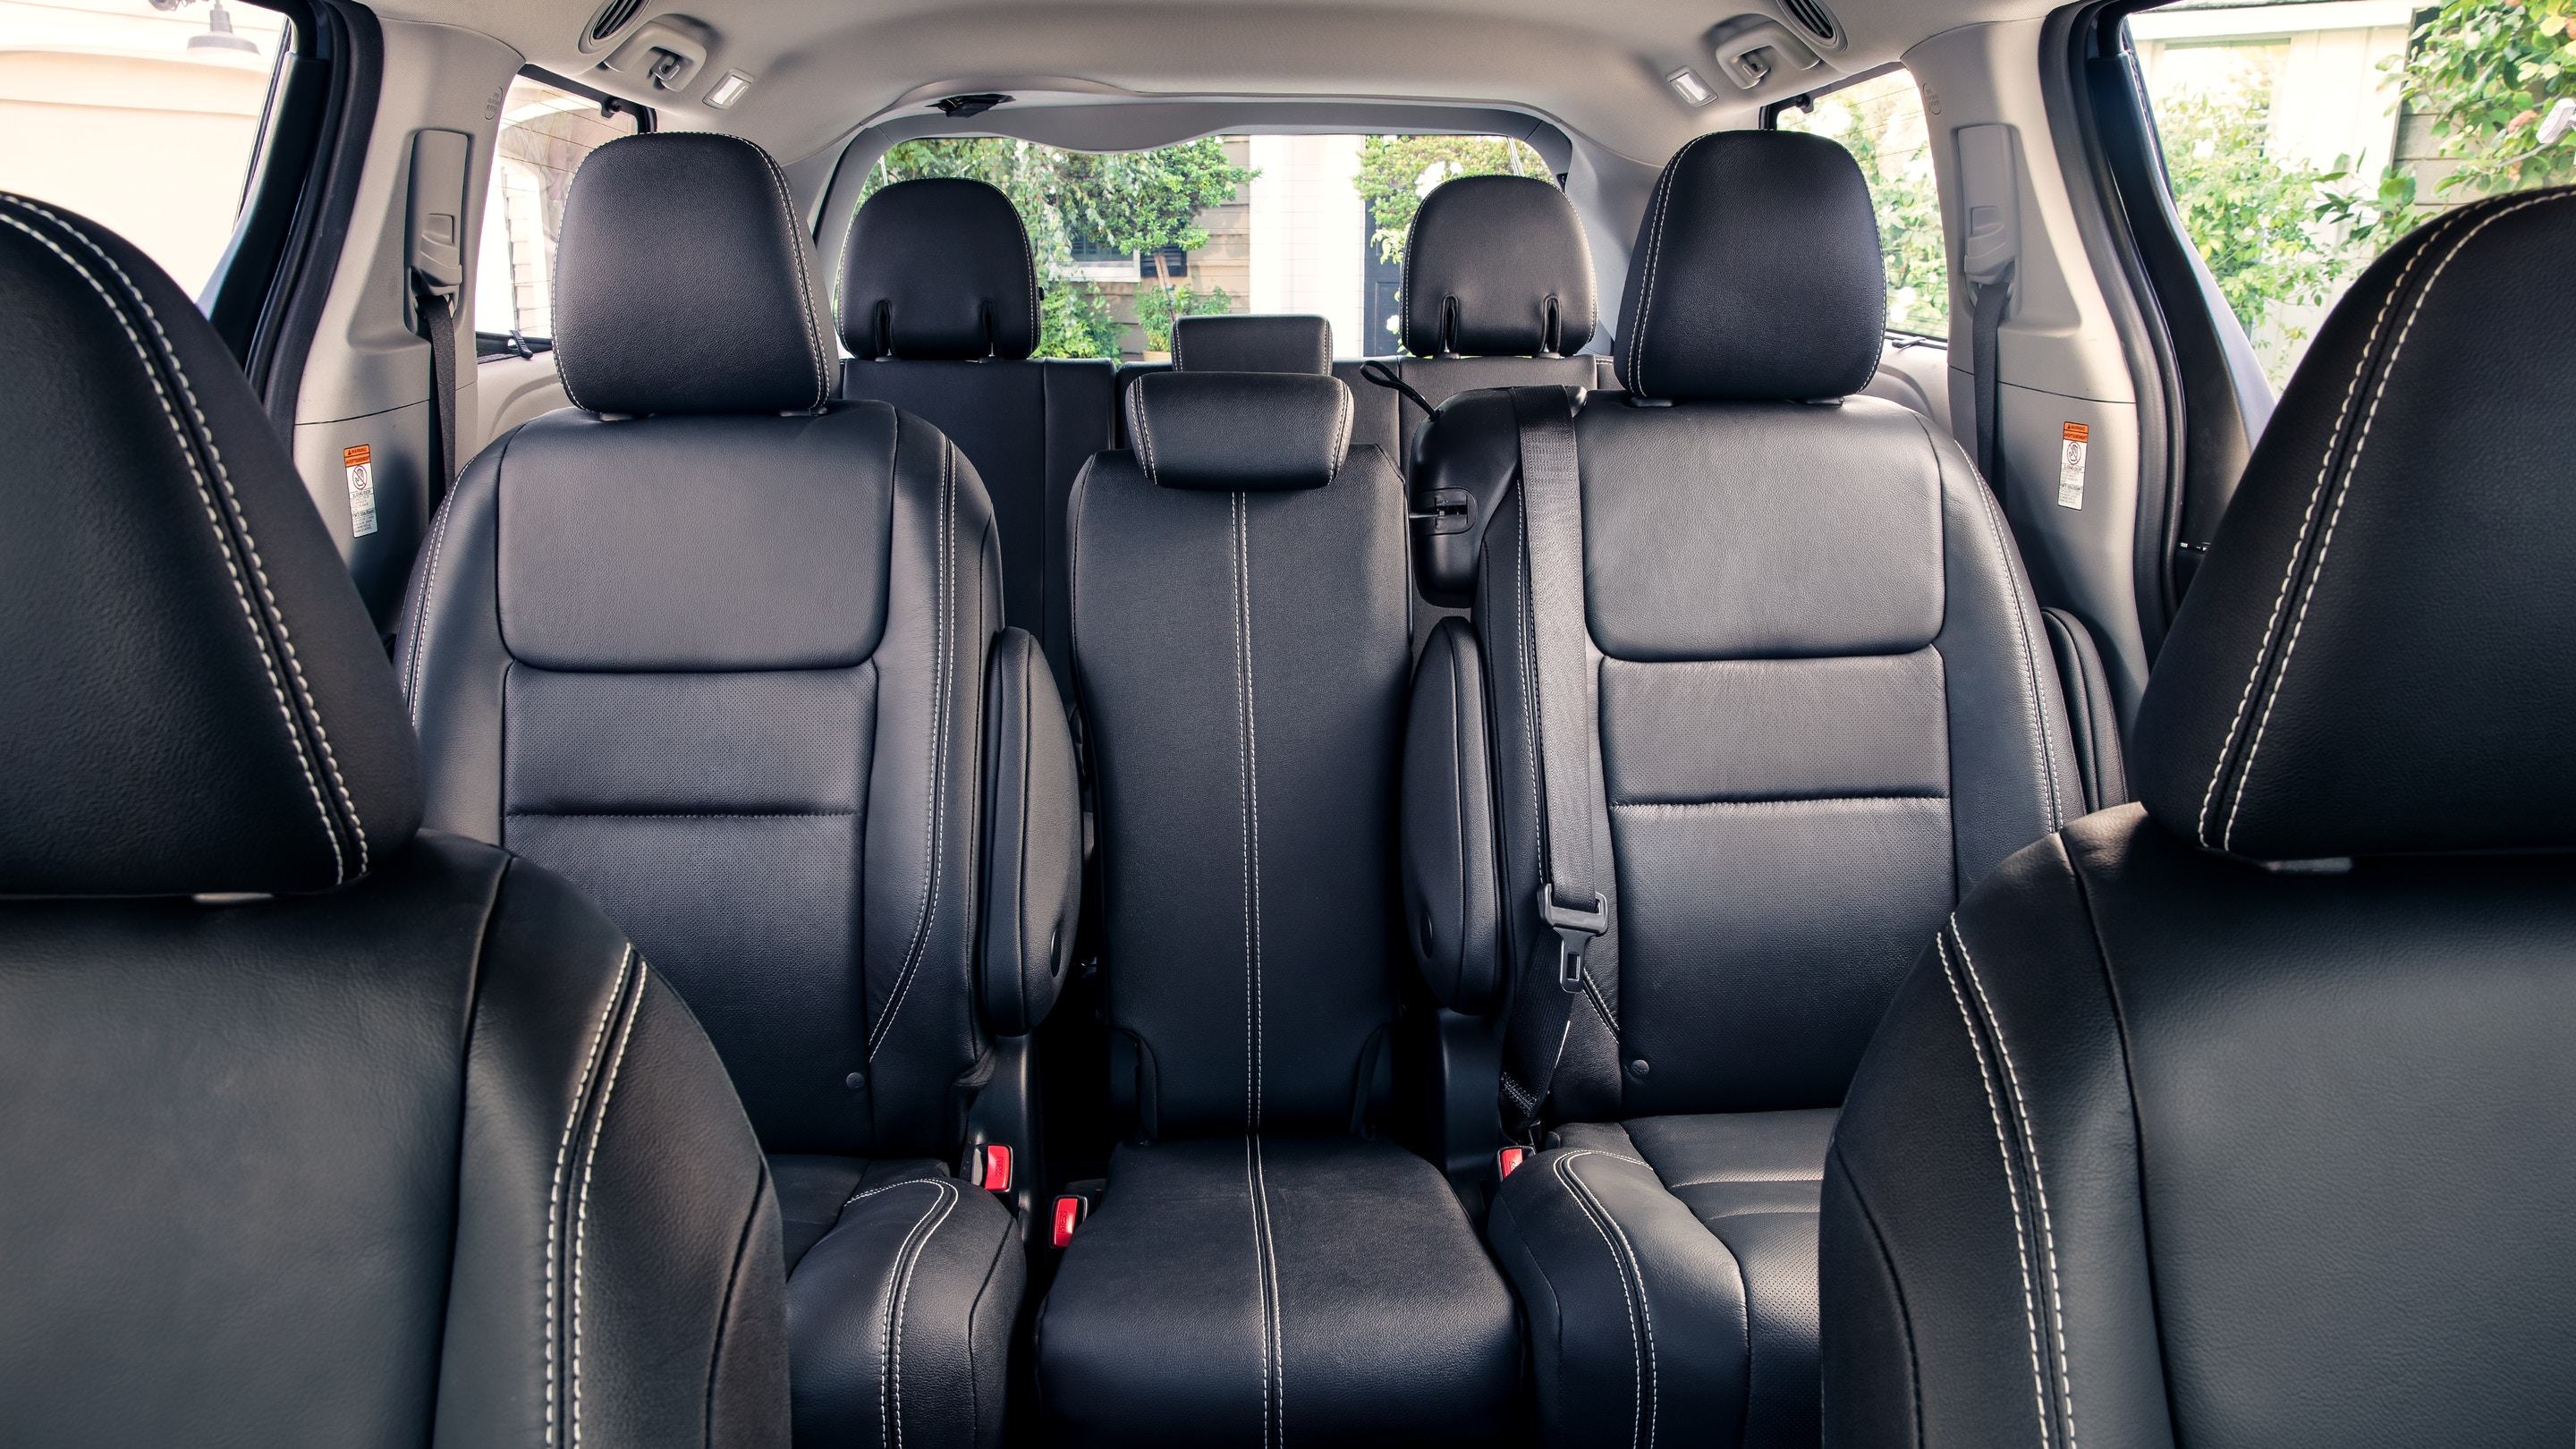 2020 Sienna Seating